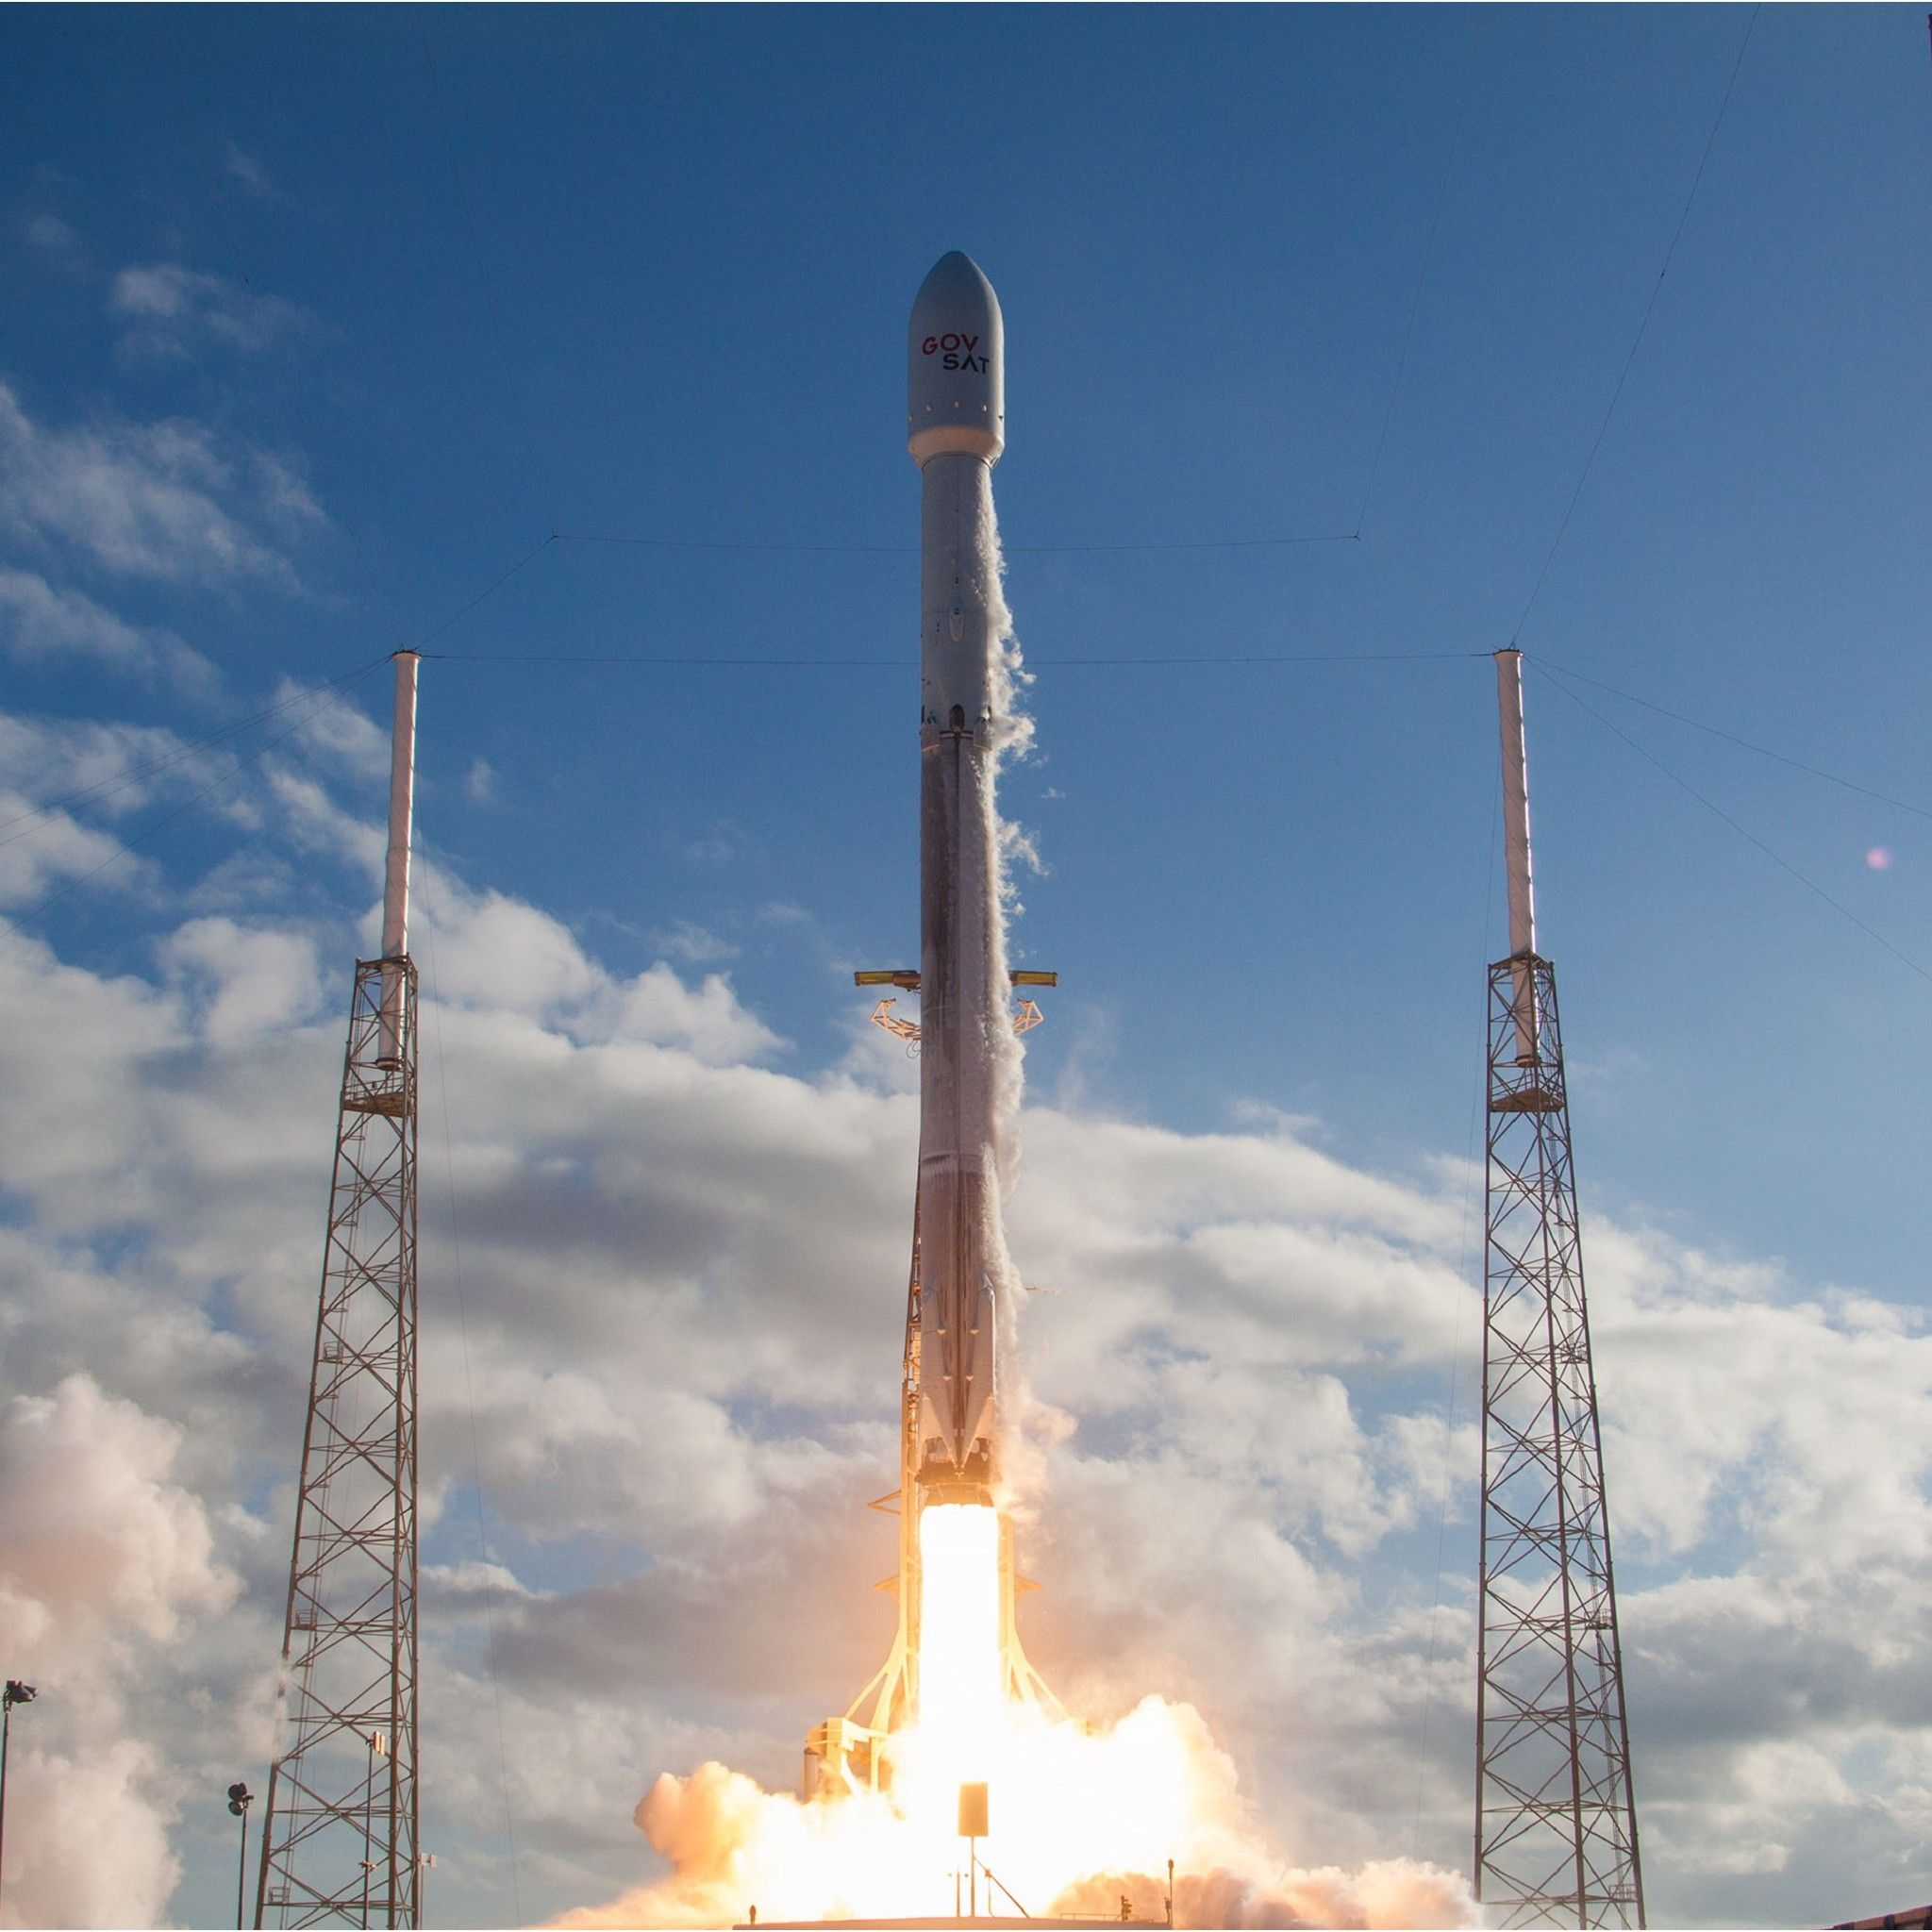 Gov Sat Tap To See More Spacex Wallpapers Mobile9